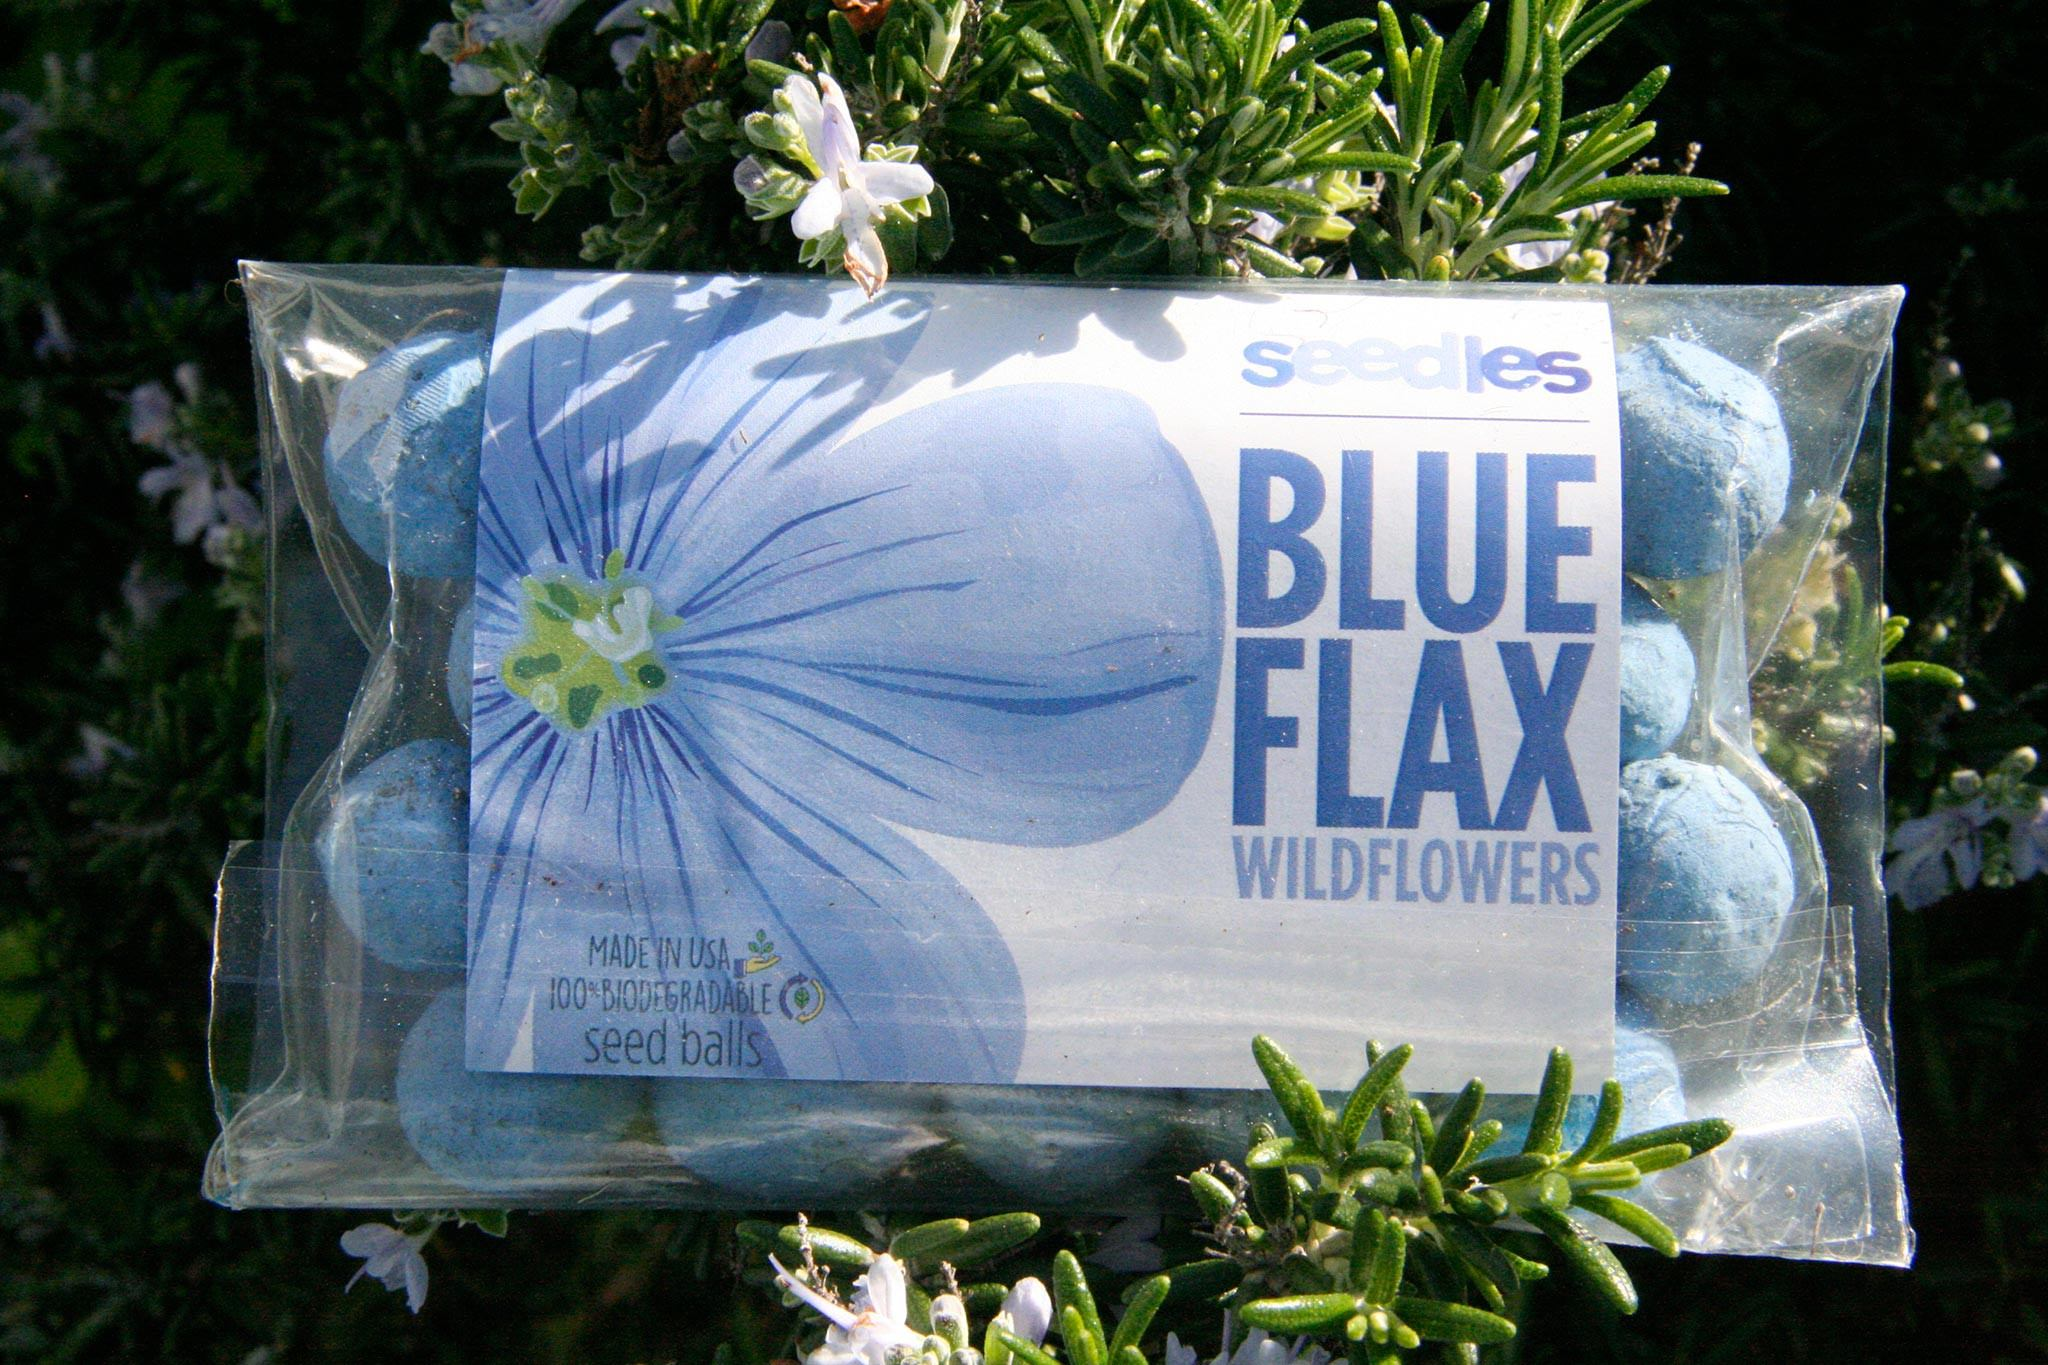 Seedles - Blue Flax Seedles